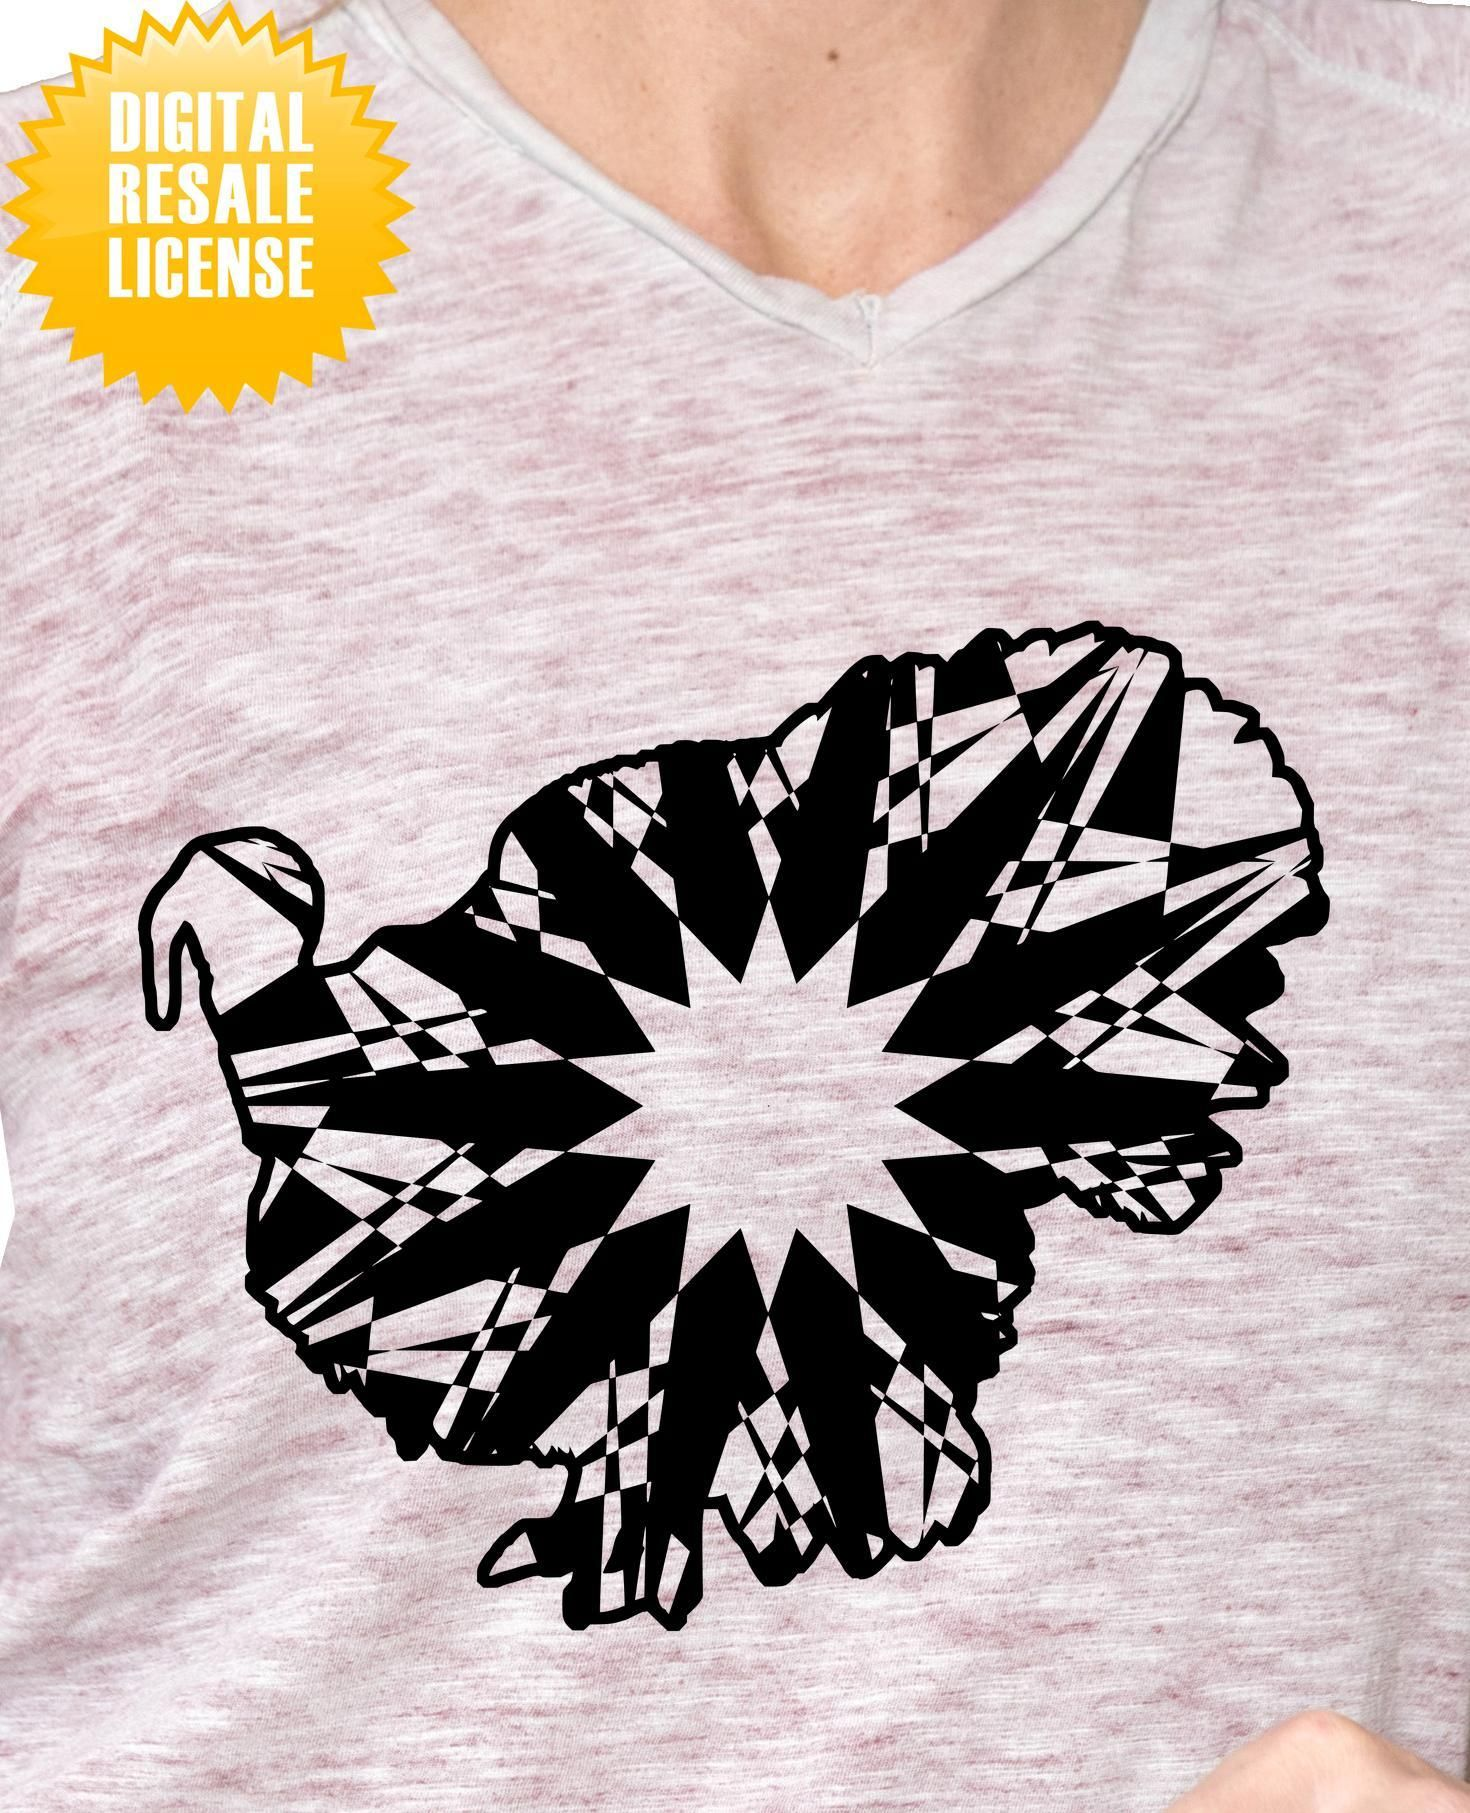 Male Turkey Mandala SVG Digital Image Resale License